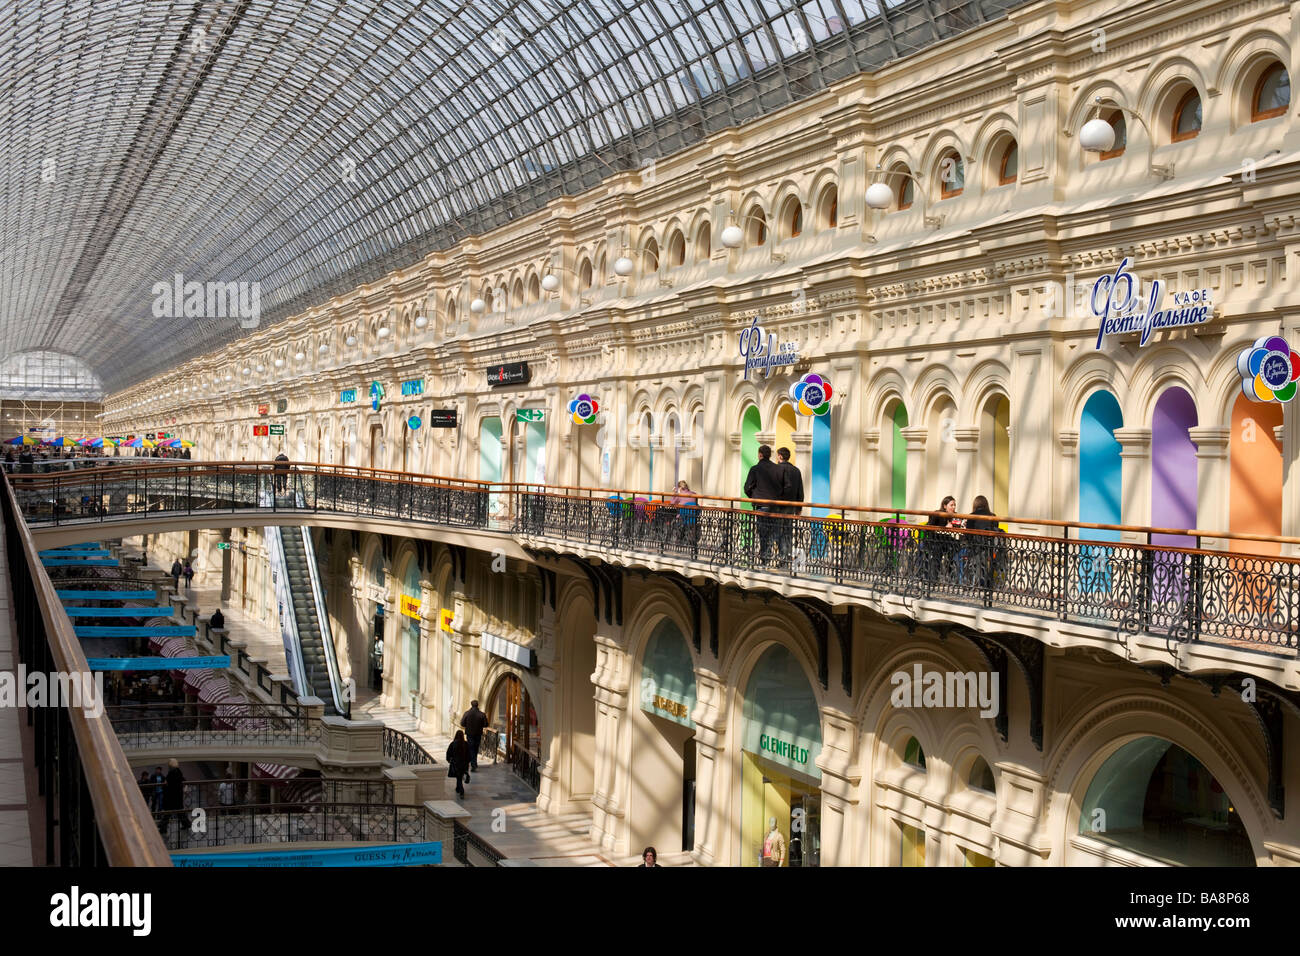 Inside of GUM luxury shopping mall, Moscow, Red Square, Russia. - Stock Image